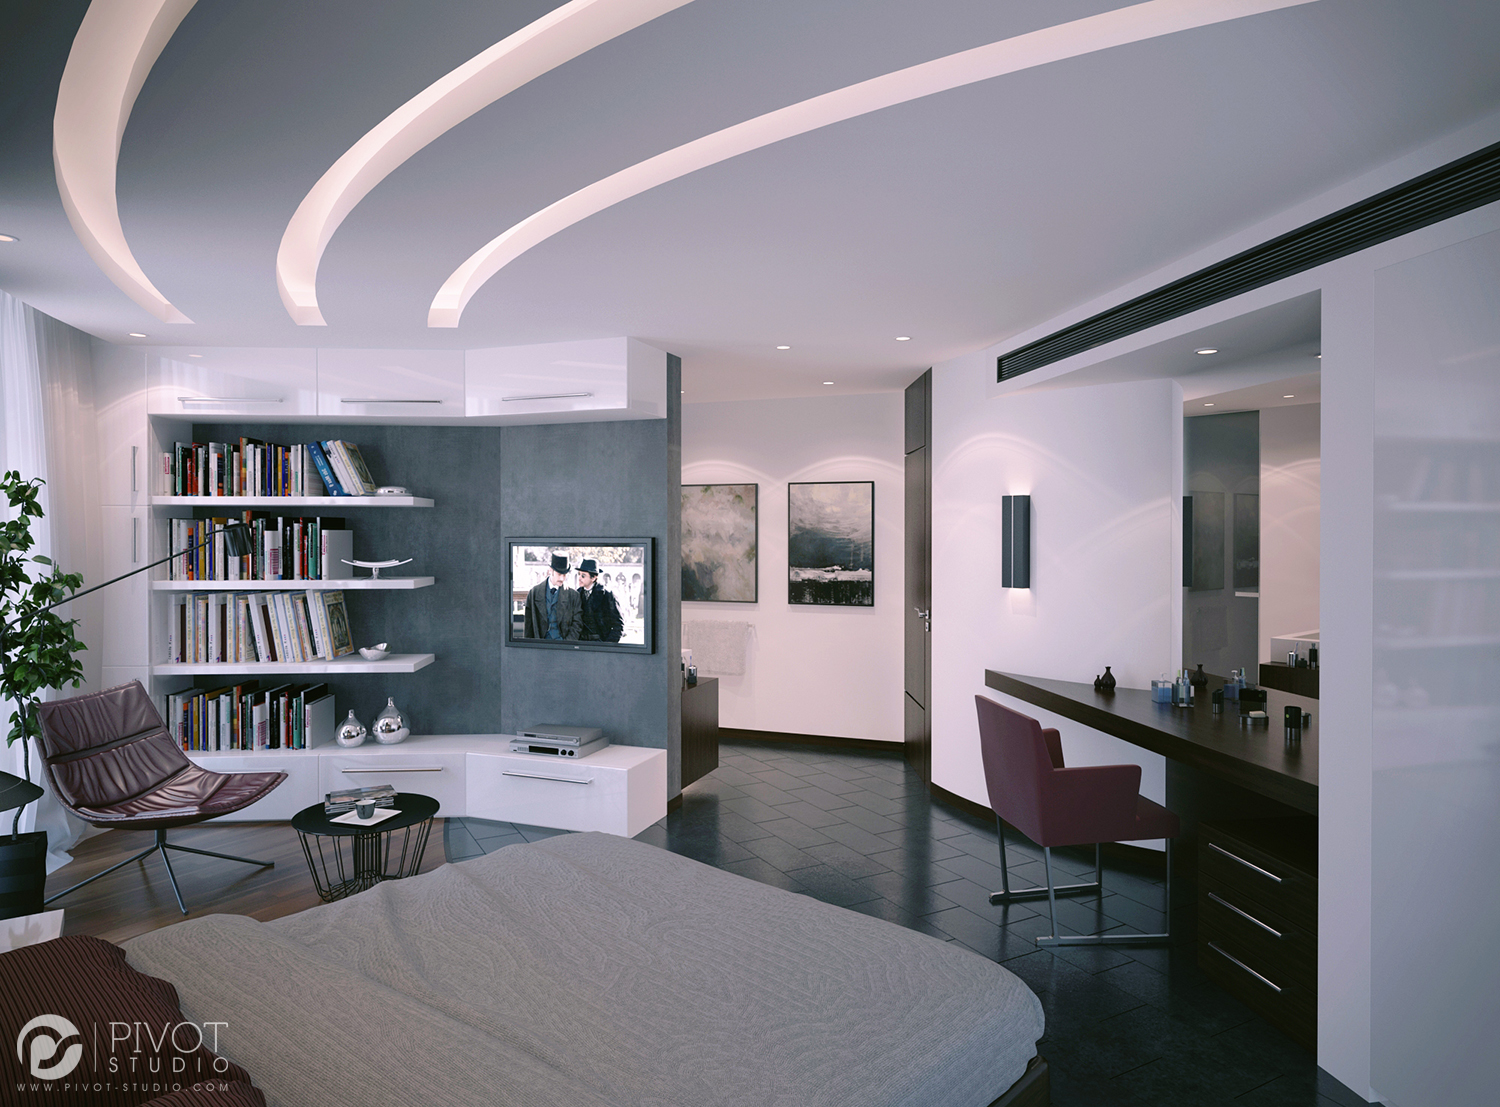 Recessed ceiling lights interior design ideas like architecture interior design follow us mozeypictures Images